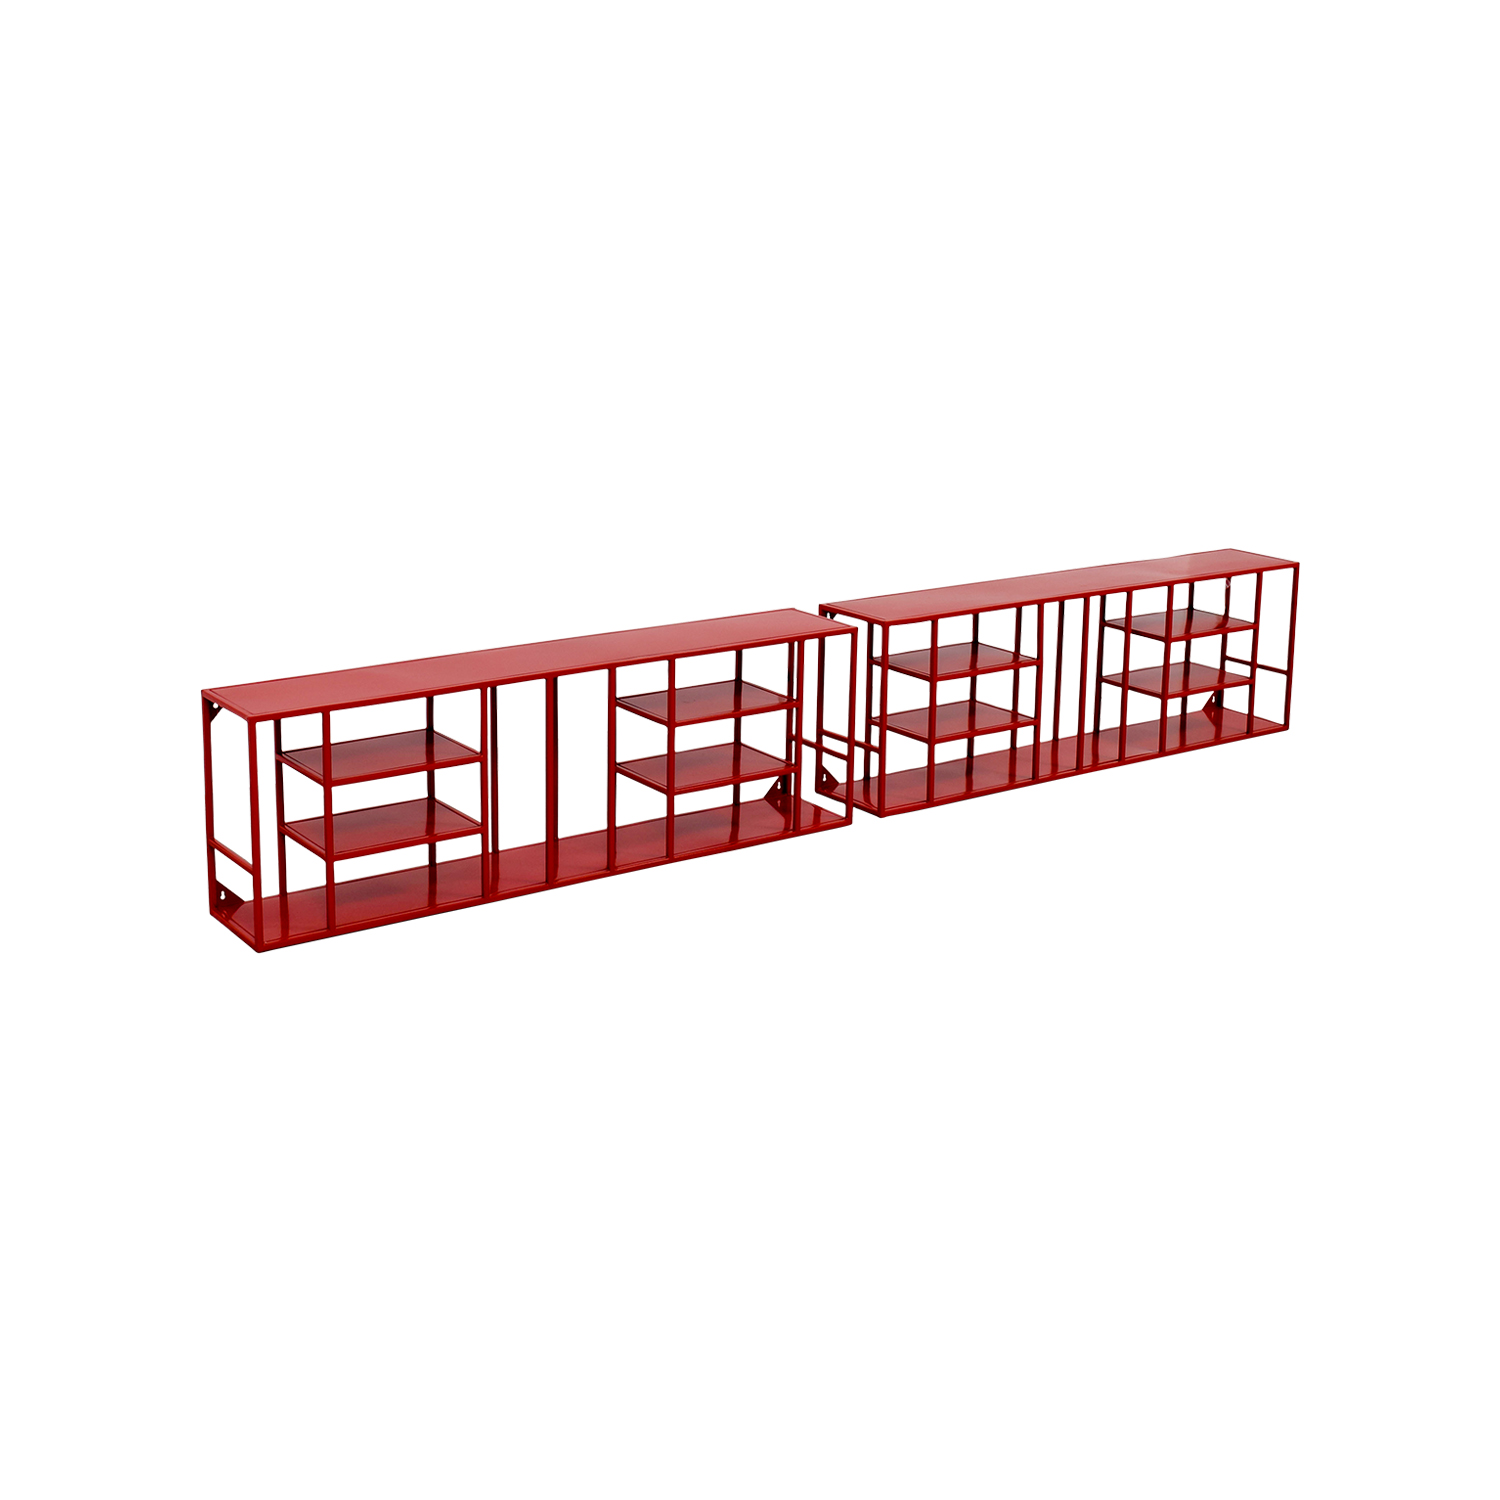 Stupendous 56 Off Cb2 Cb2 Red Metal Bookshelves Storage Interior Design Ideas Clesiryabchikinfo